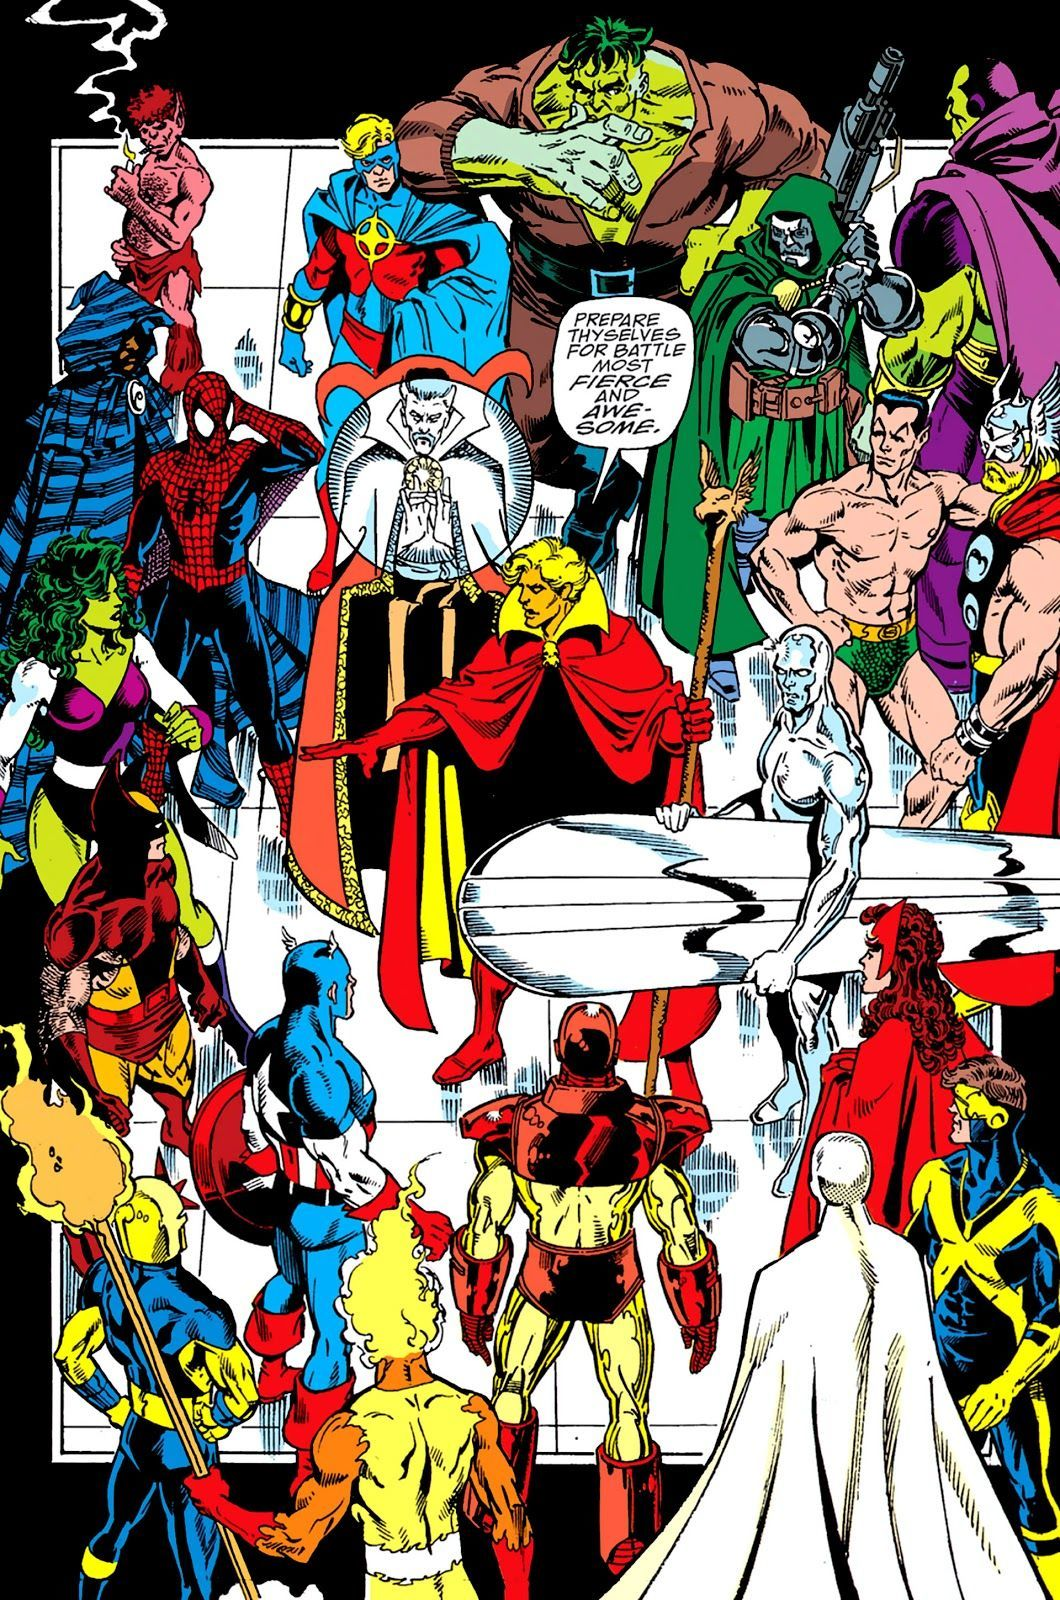 Infinity Gauntlet #3 (Written by Jim Starlin, Art by George Perez)